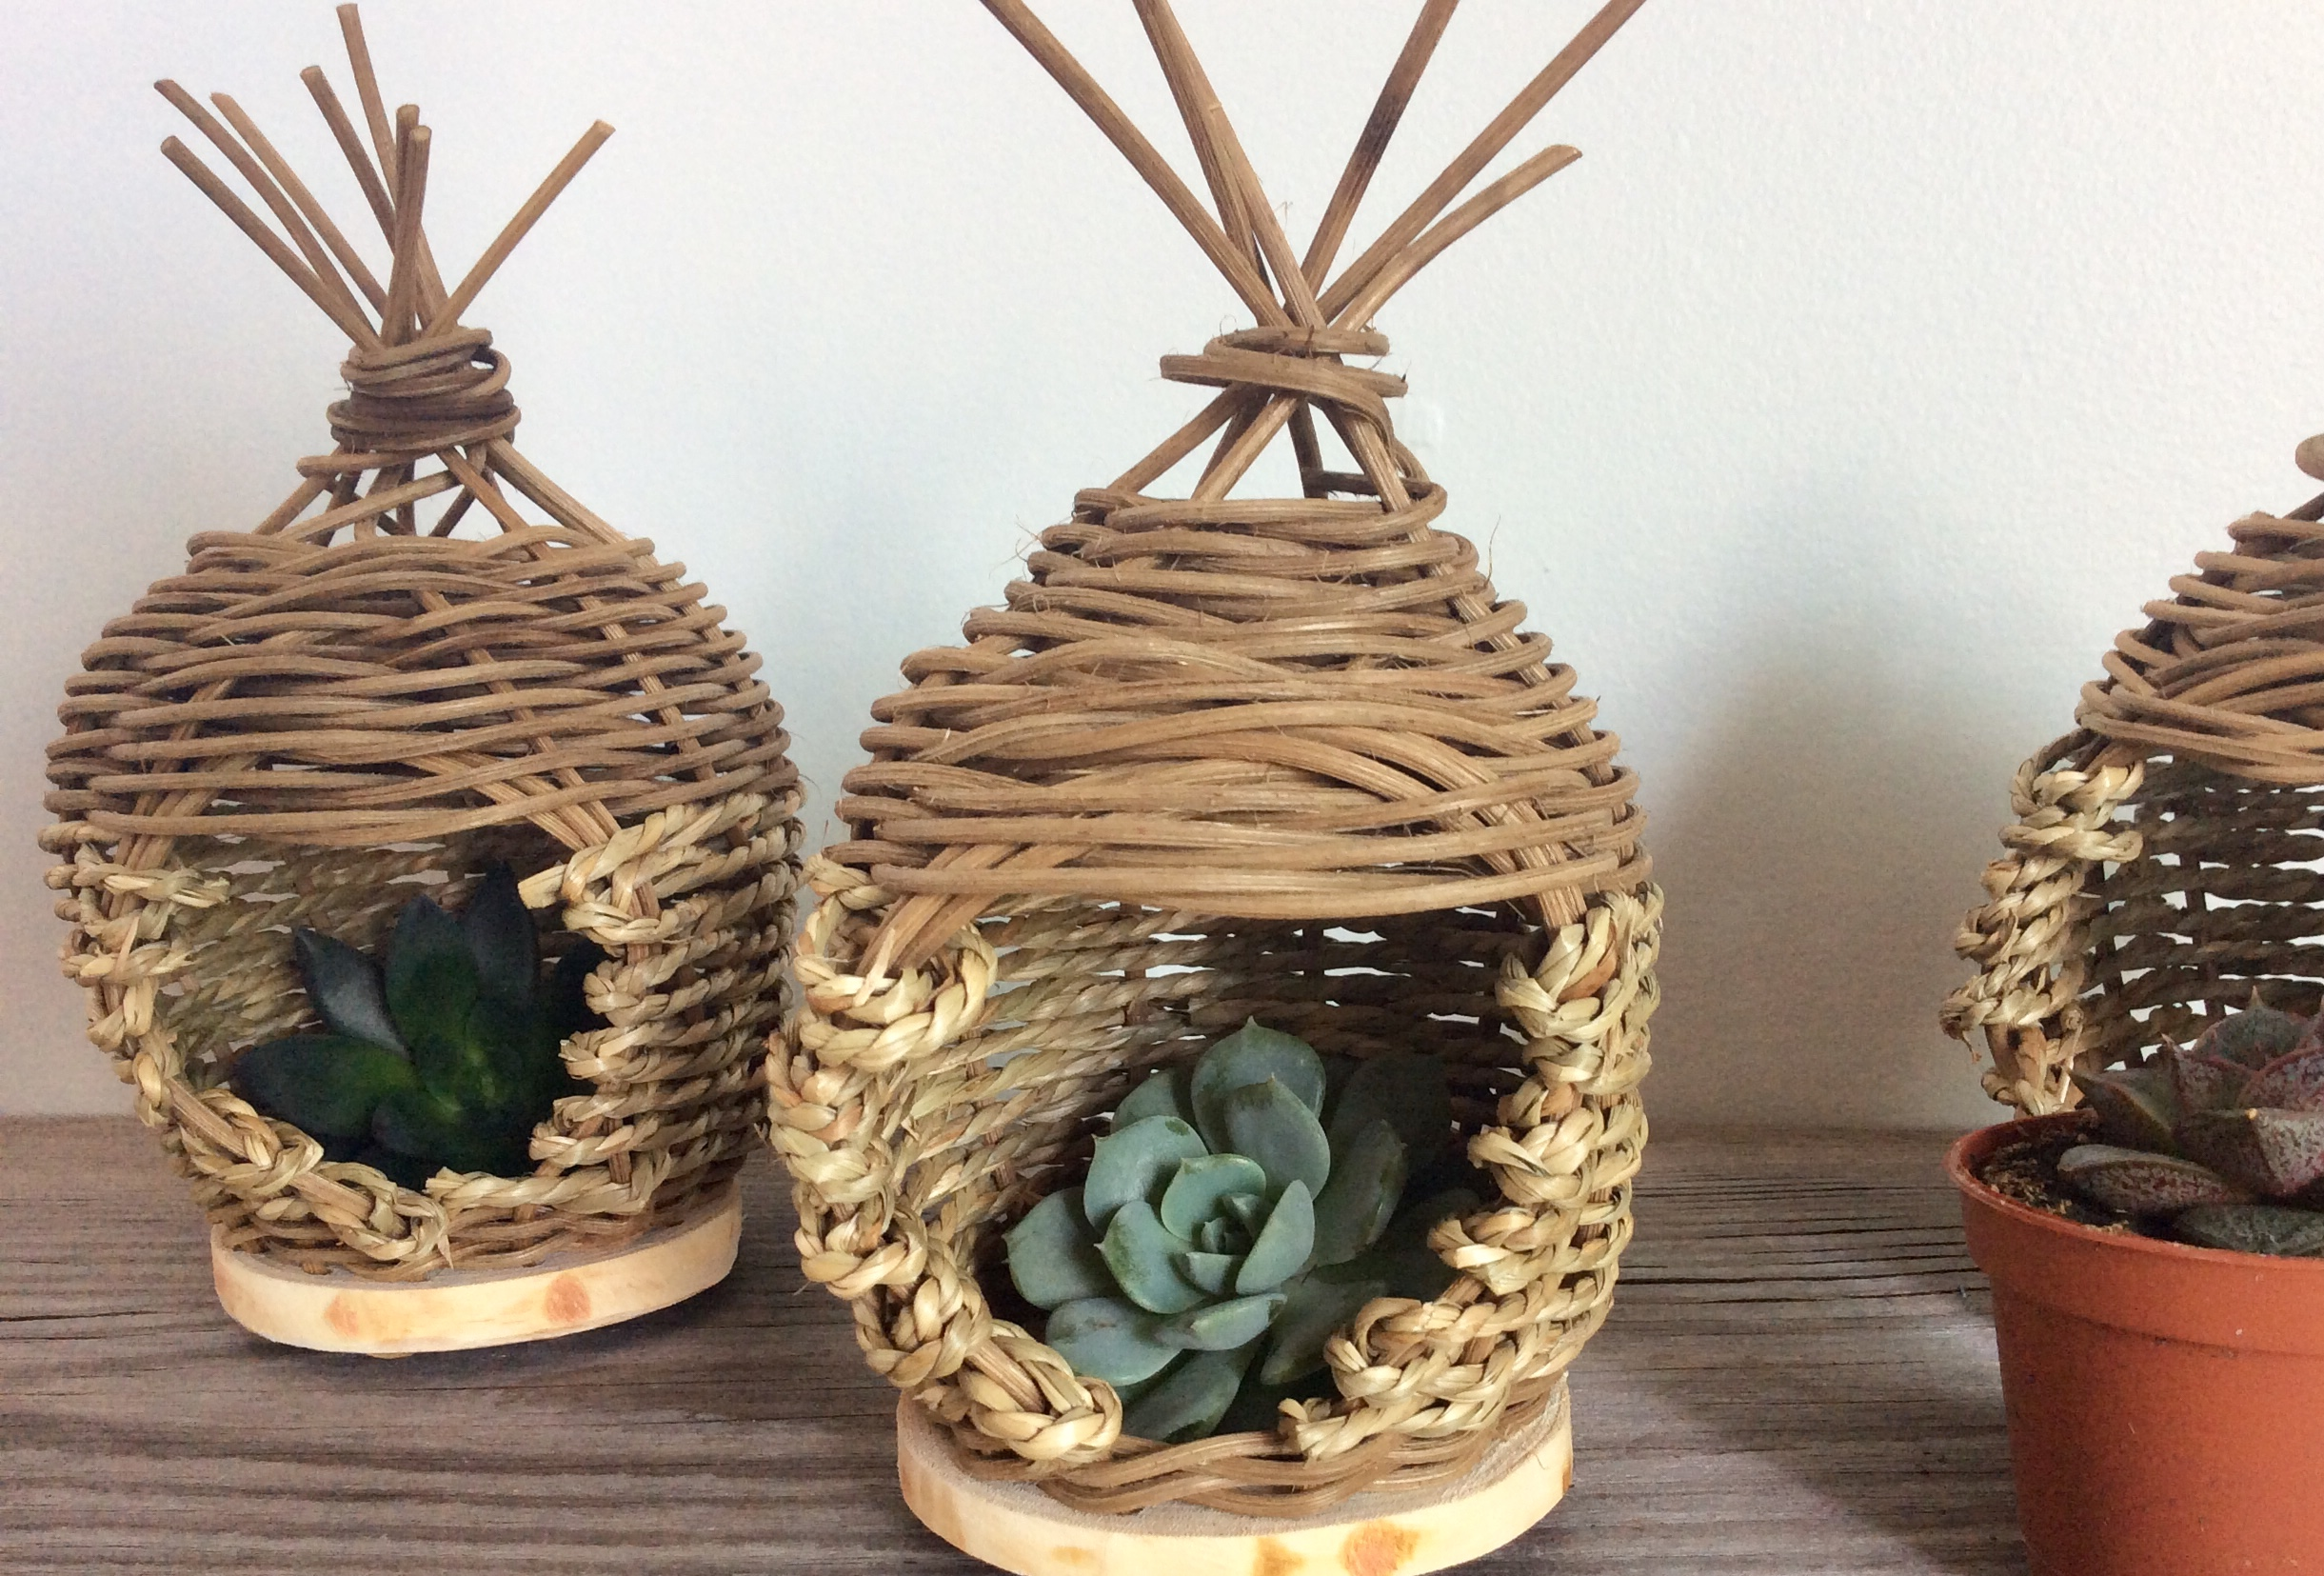 Woven Air Planters with Amy Dugas